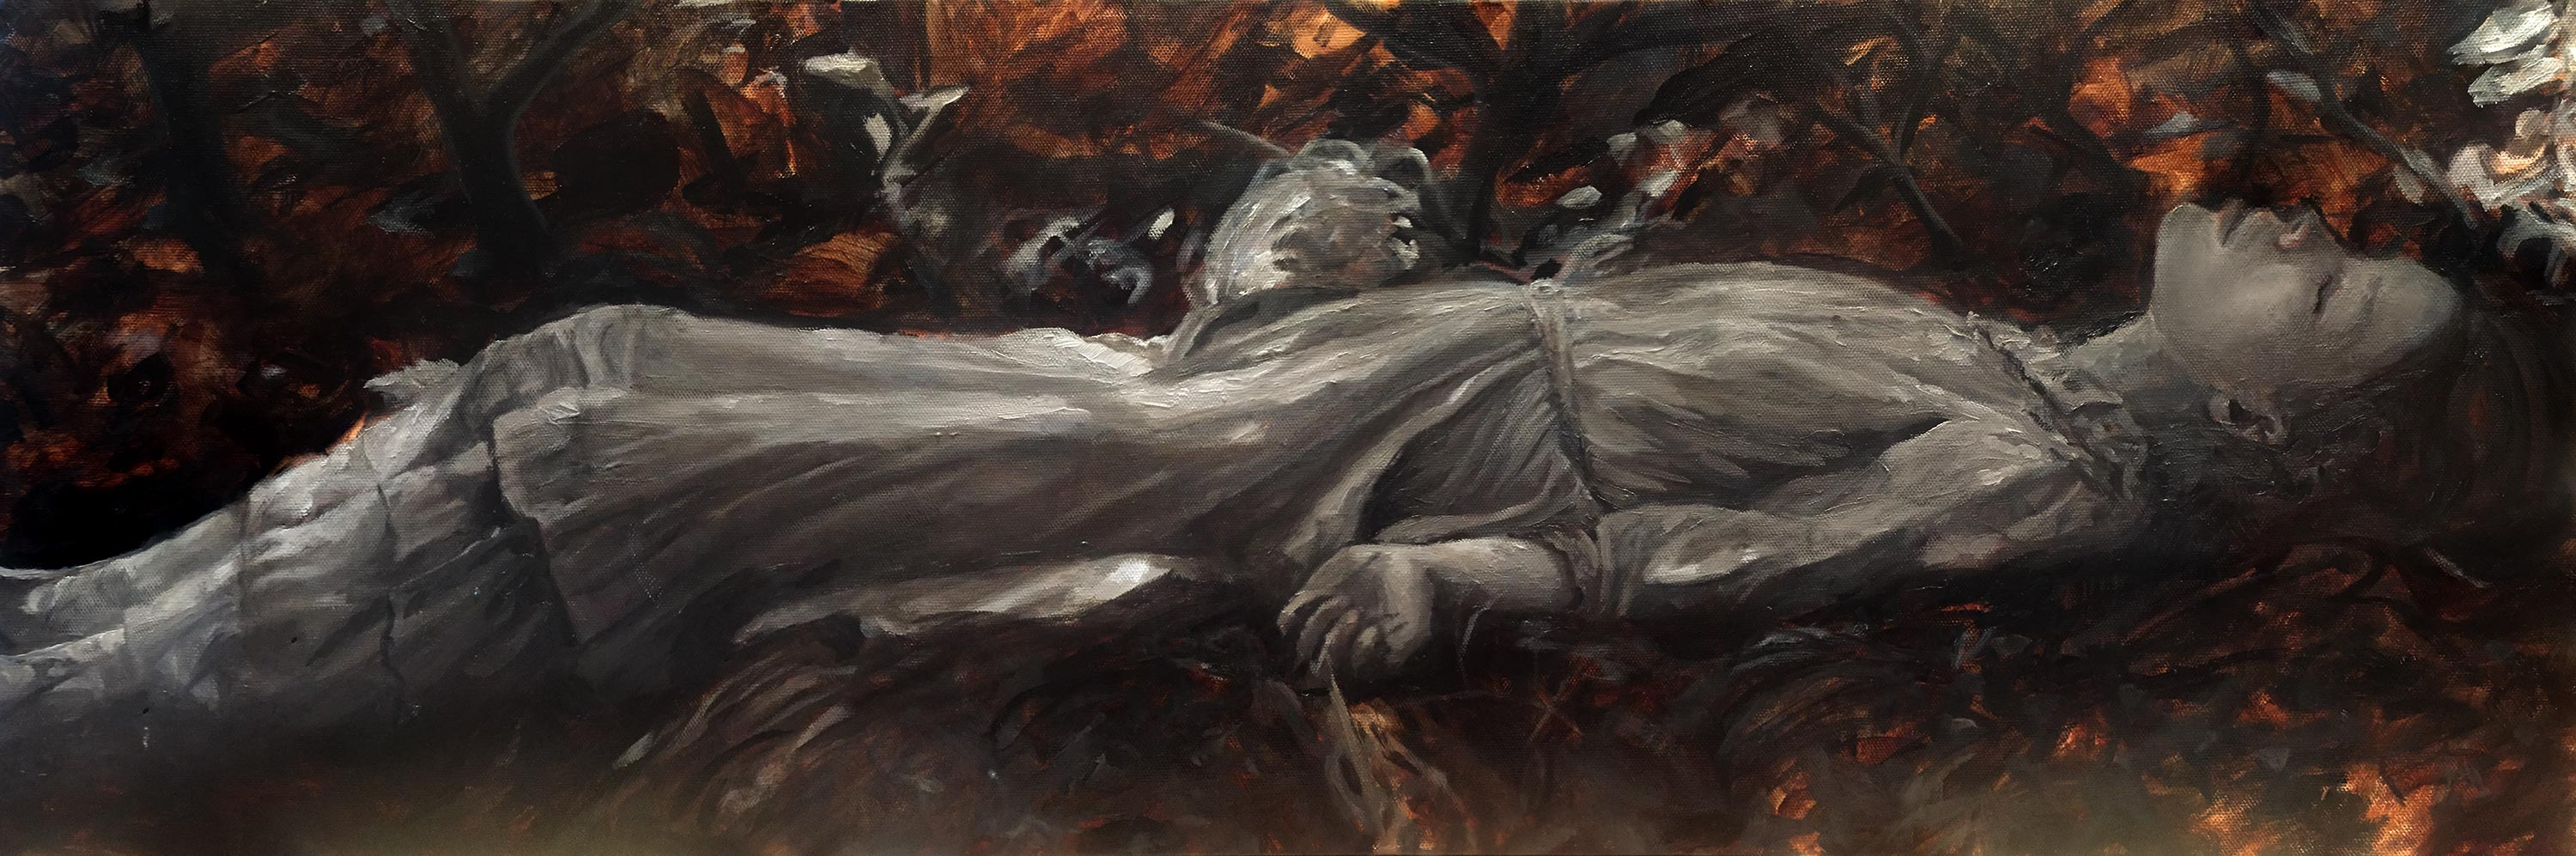 Artist Danny Roberts Underpainting of model Julia Hafstrom Sarah Finn. Girl Laying down in a forest in leaves beauty